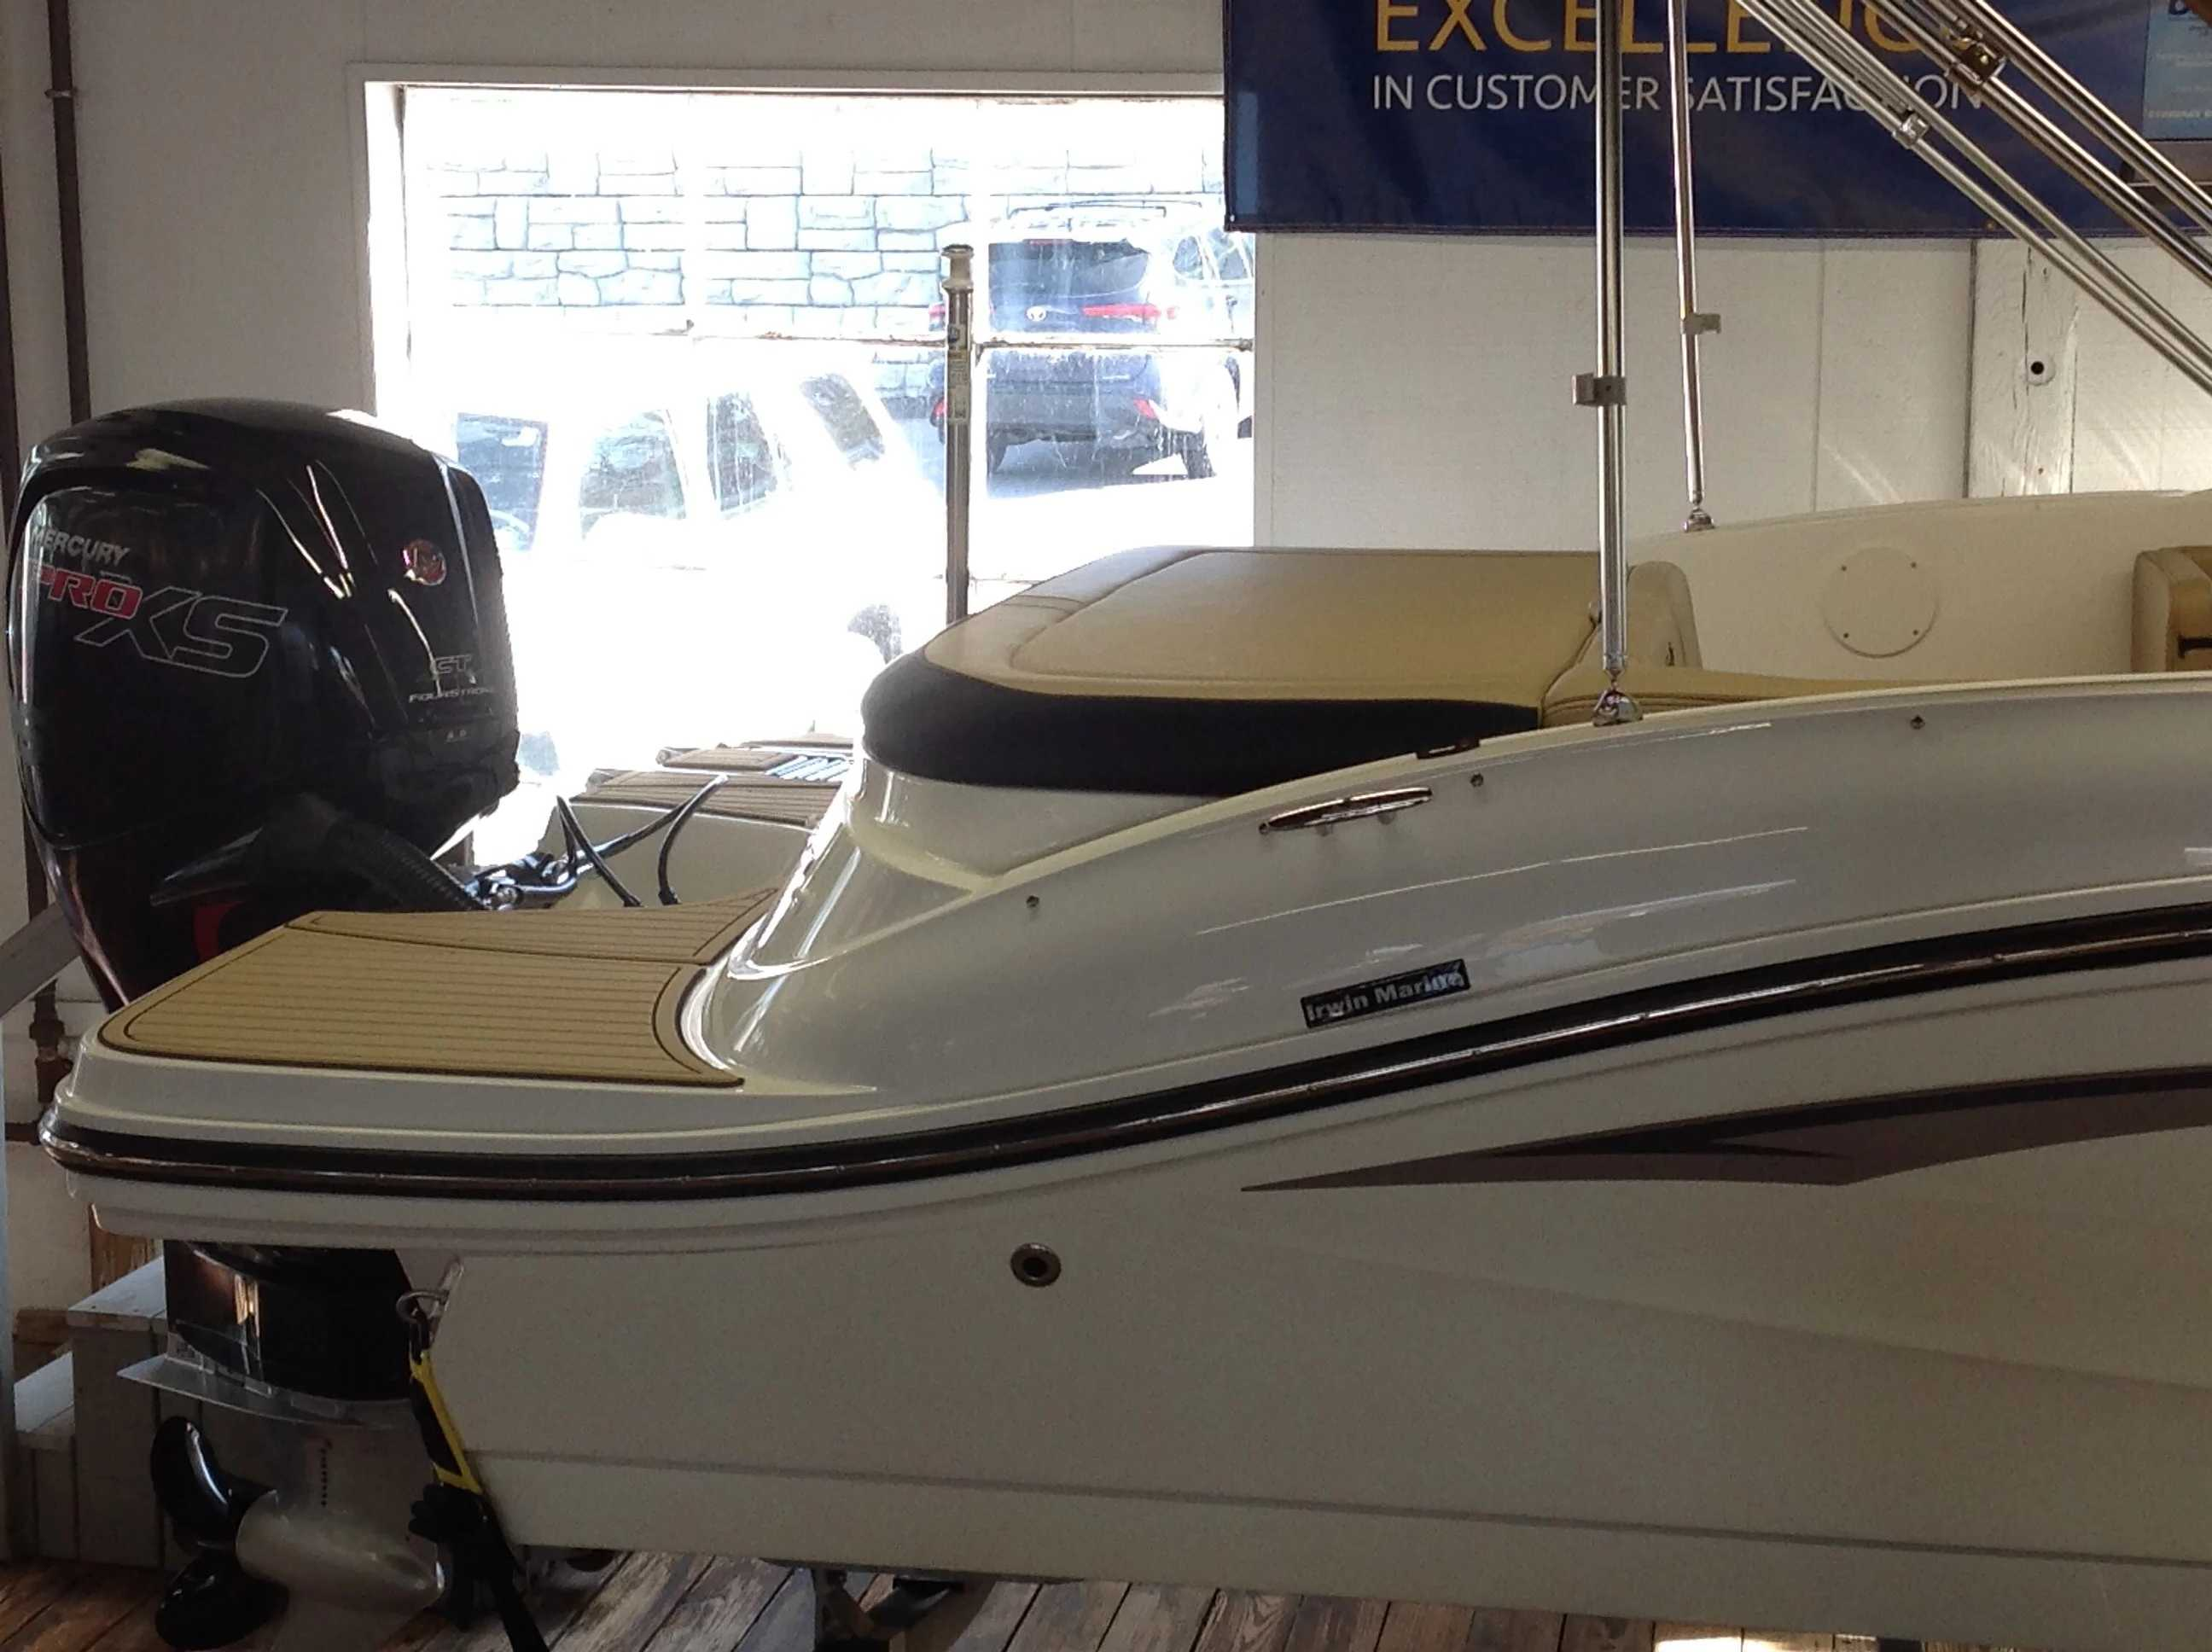 2021 Sea Ray boat for sale, model of the boat is 190 spxo & Image # 14 of 14